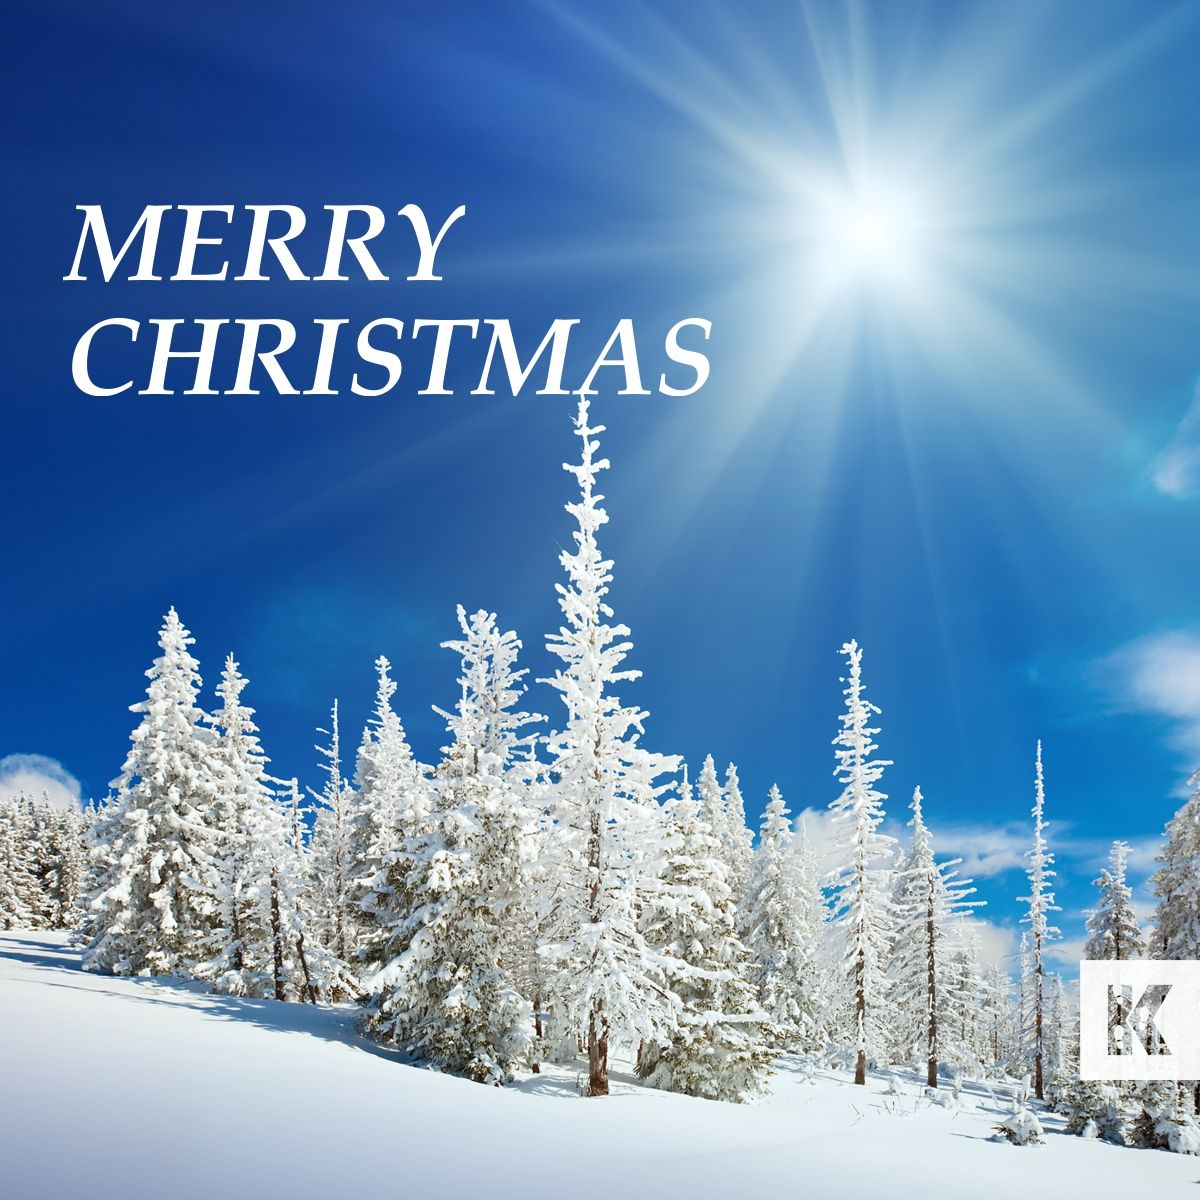 MERRY CHRISTMAS We'd like to wish all our friends and